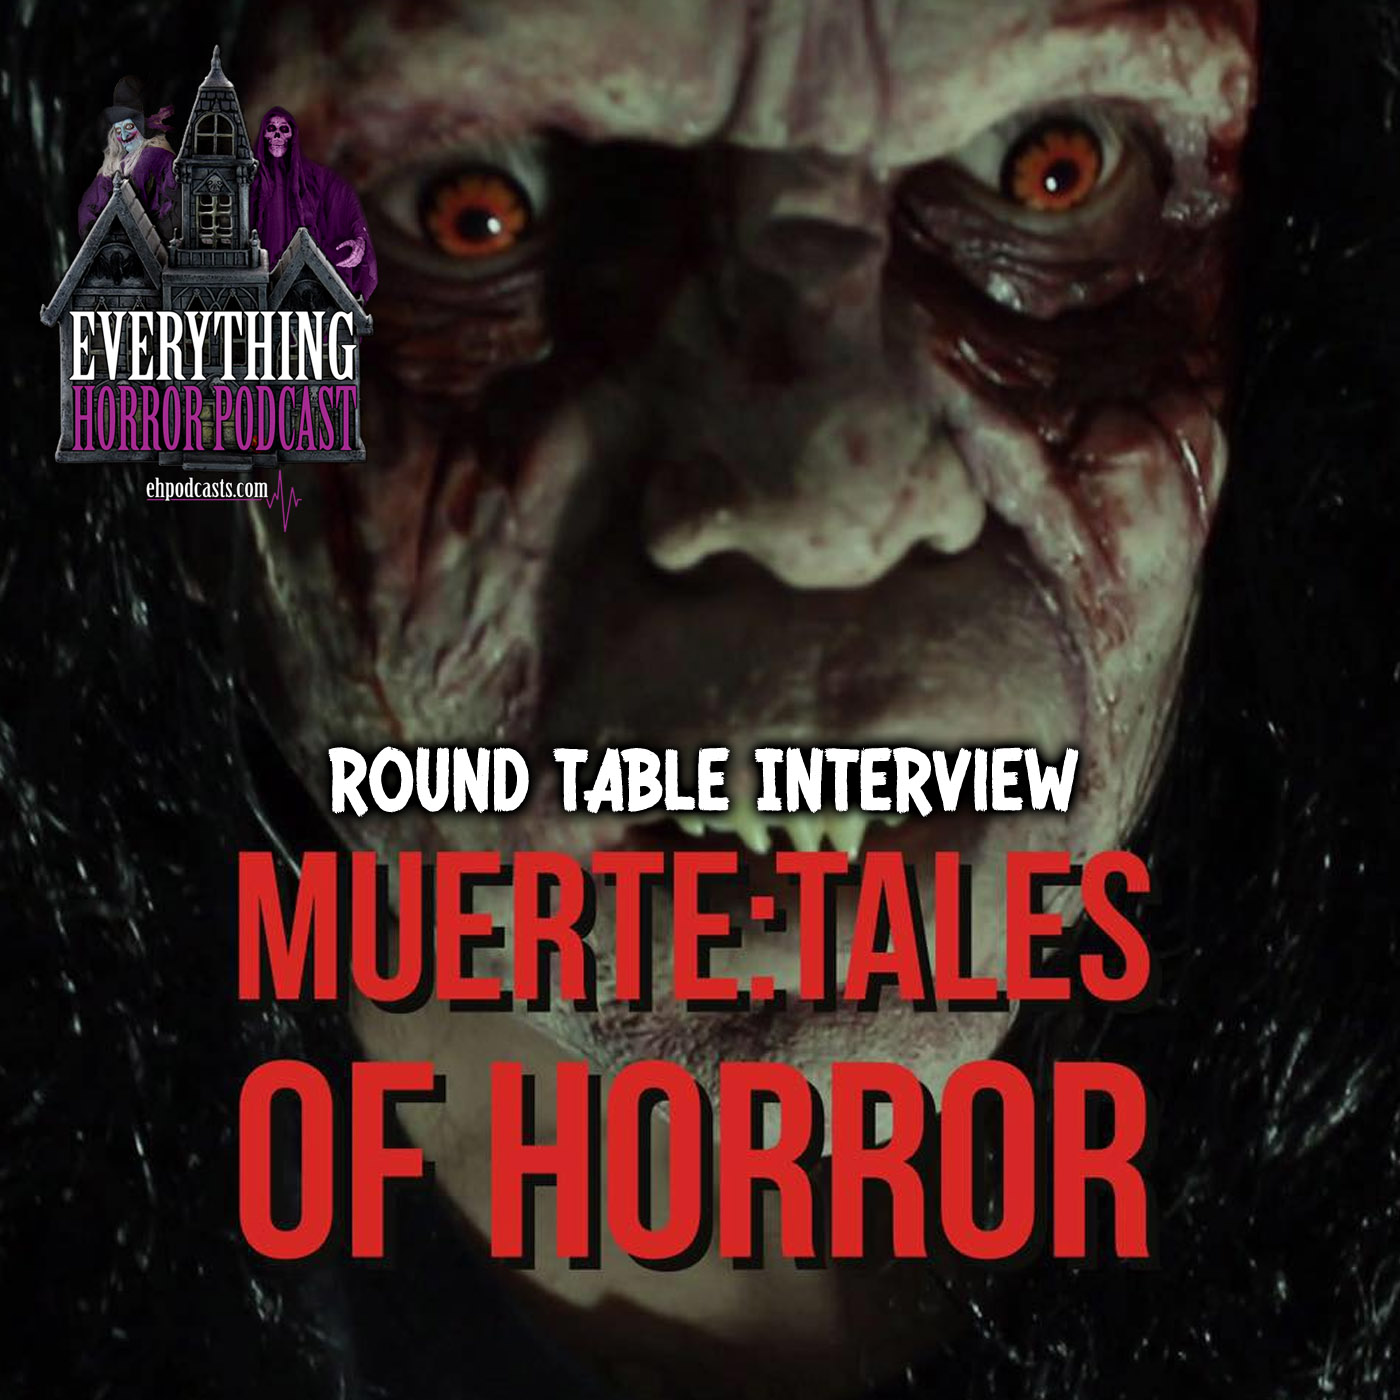 Round Table Interviews: Muerte: Tales Of Horror